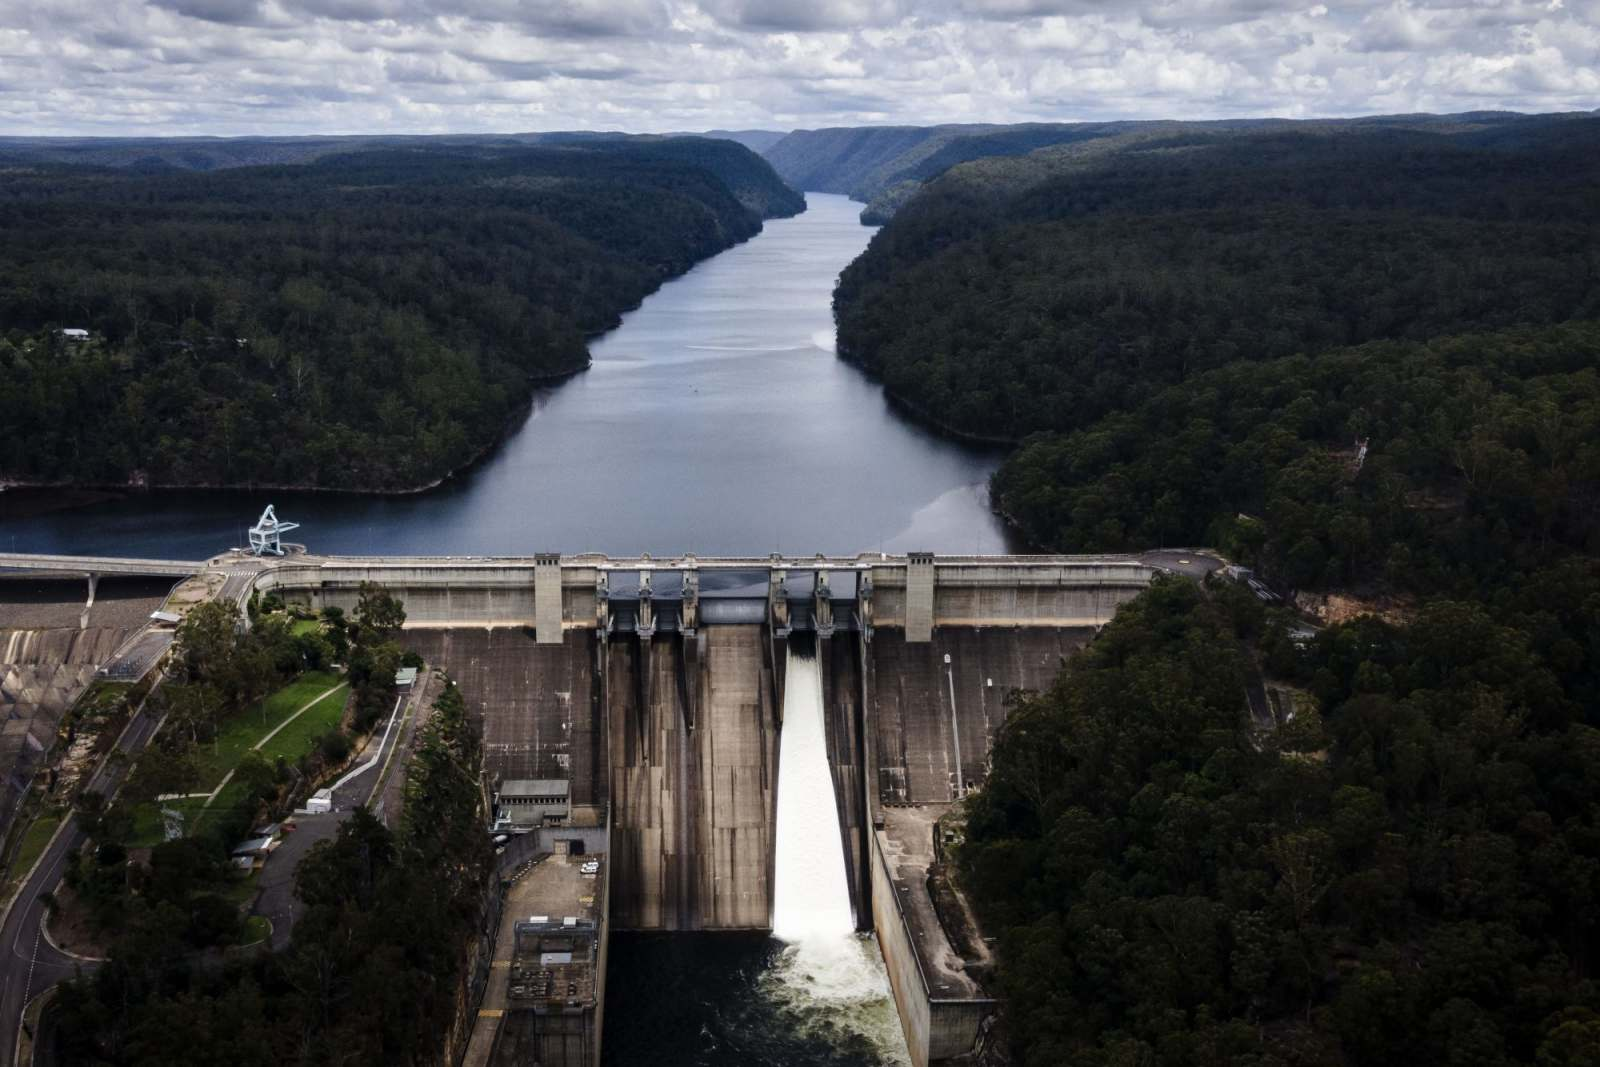 'Where is the money coming from?': Official doubts cast on dam plans Image